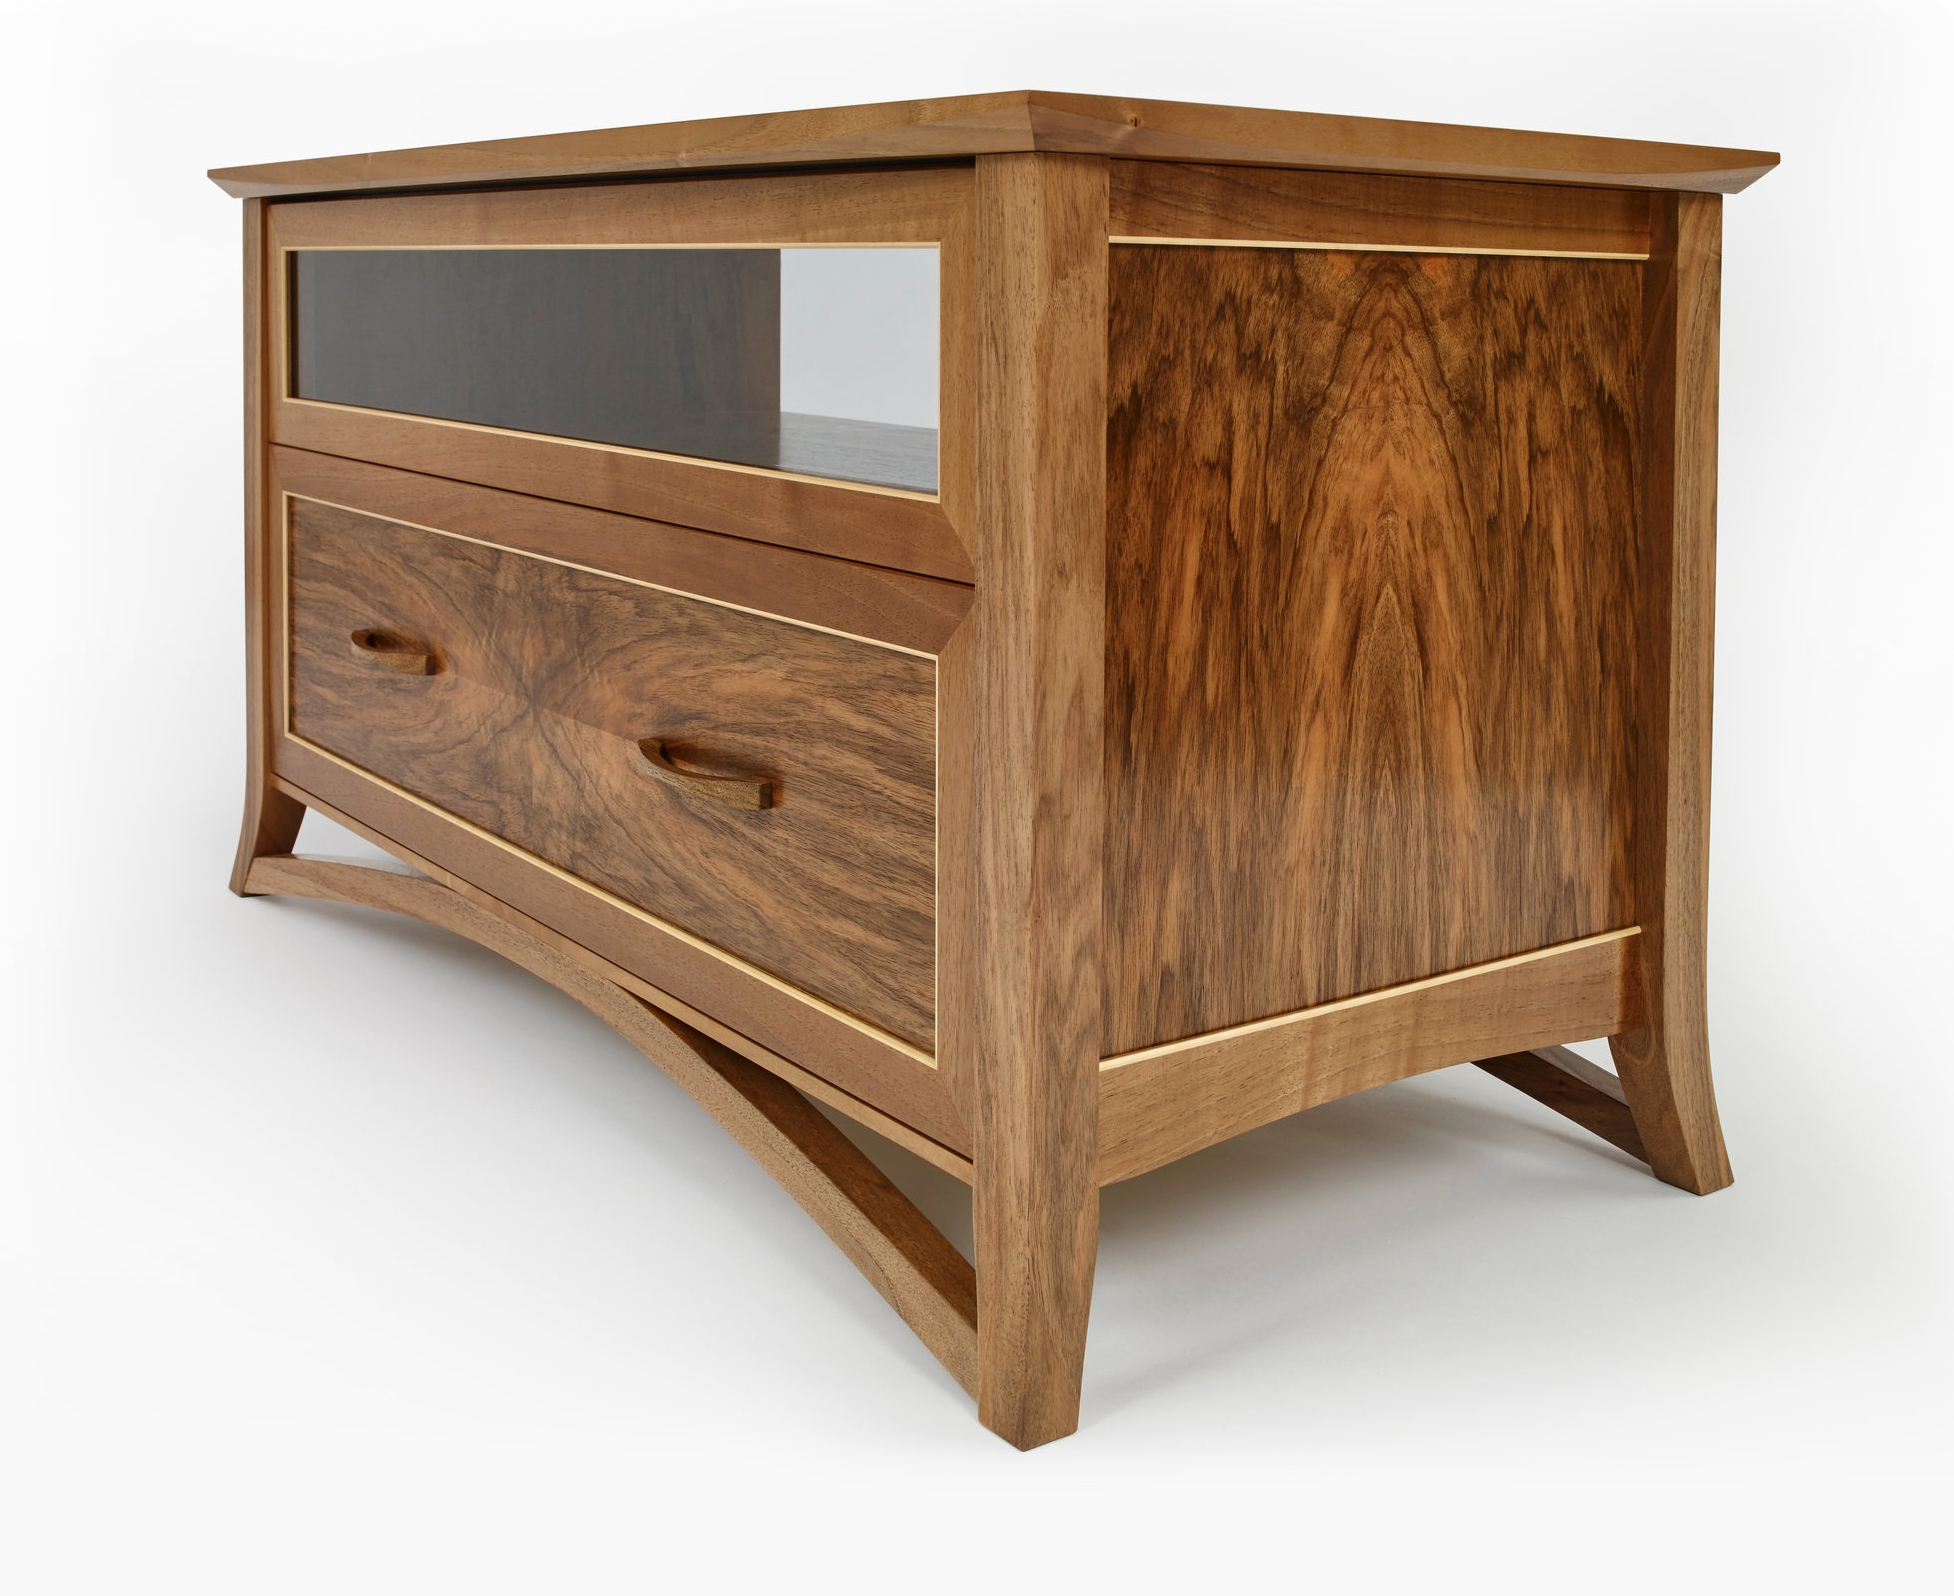 Andrew Strickland Furniture Span media unit02.jpg